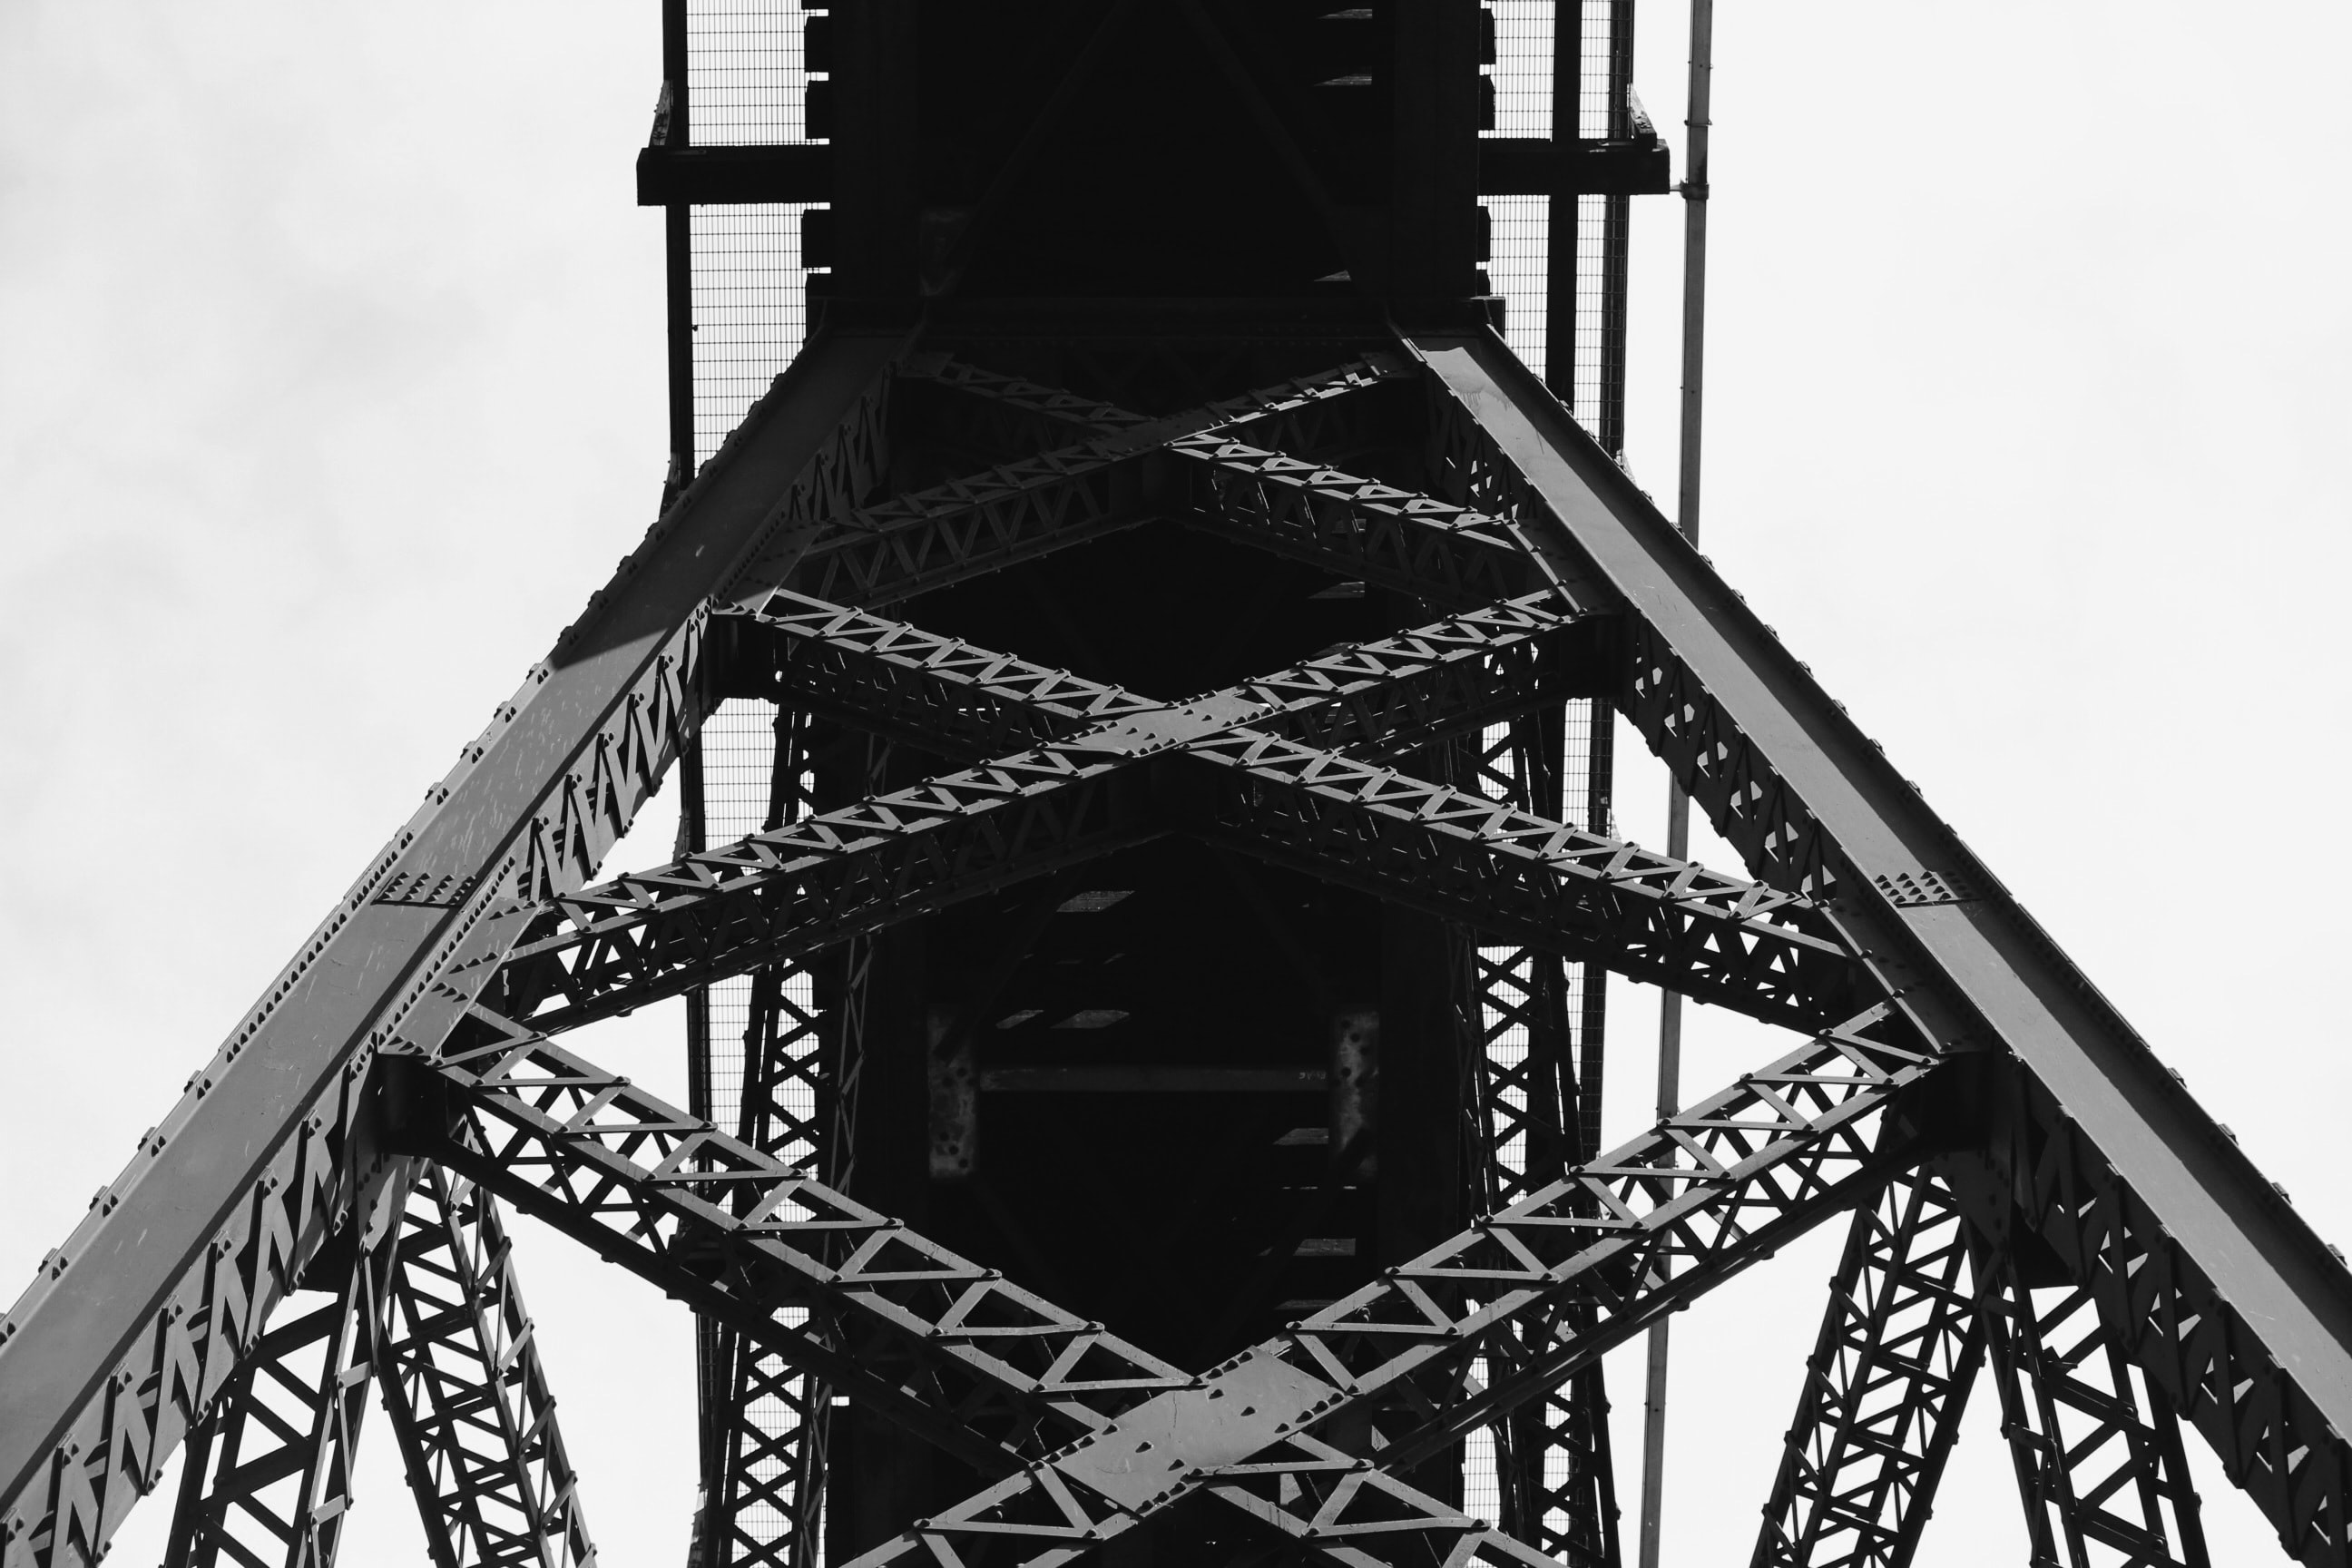 Looking up at the bridge architecture made of steel beams.